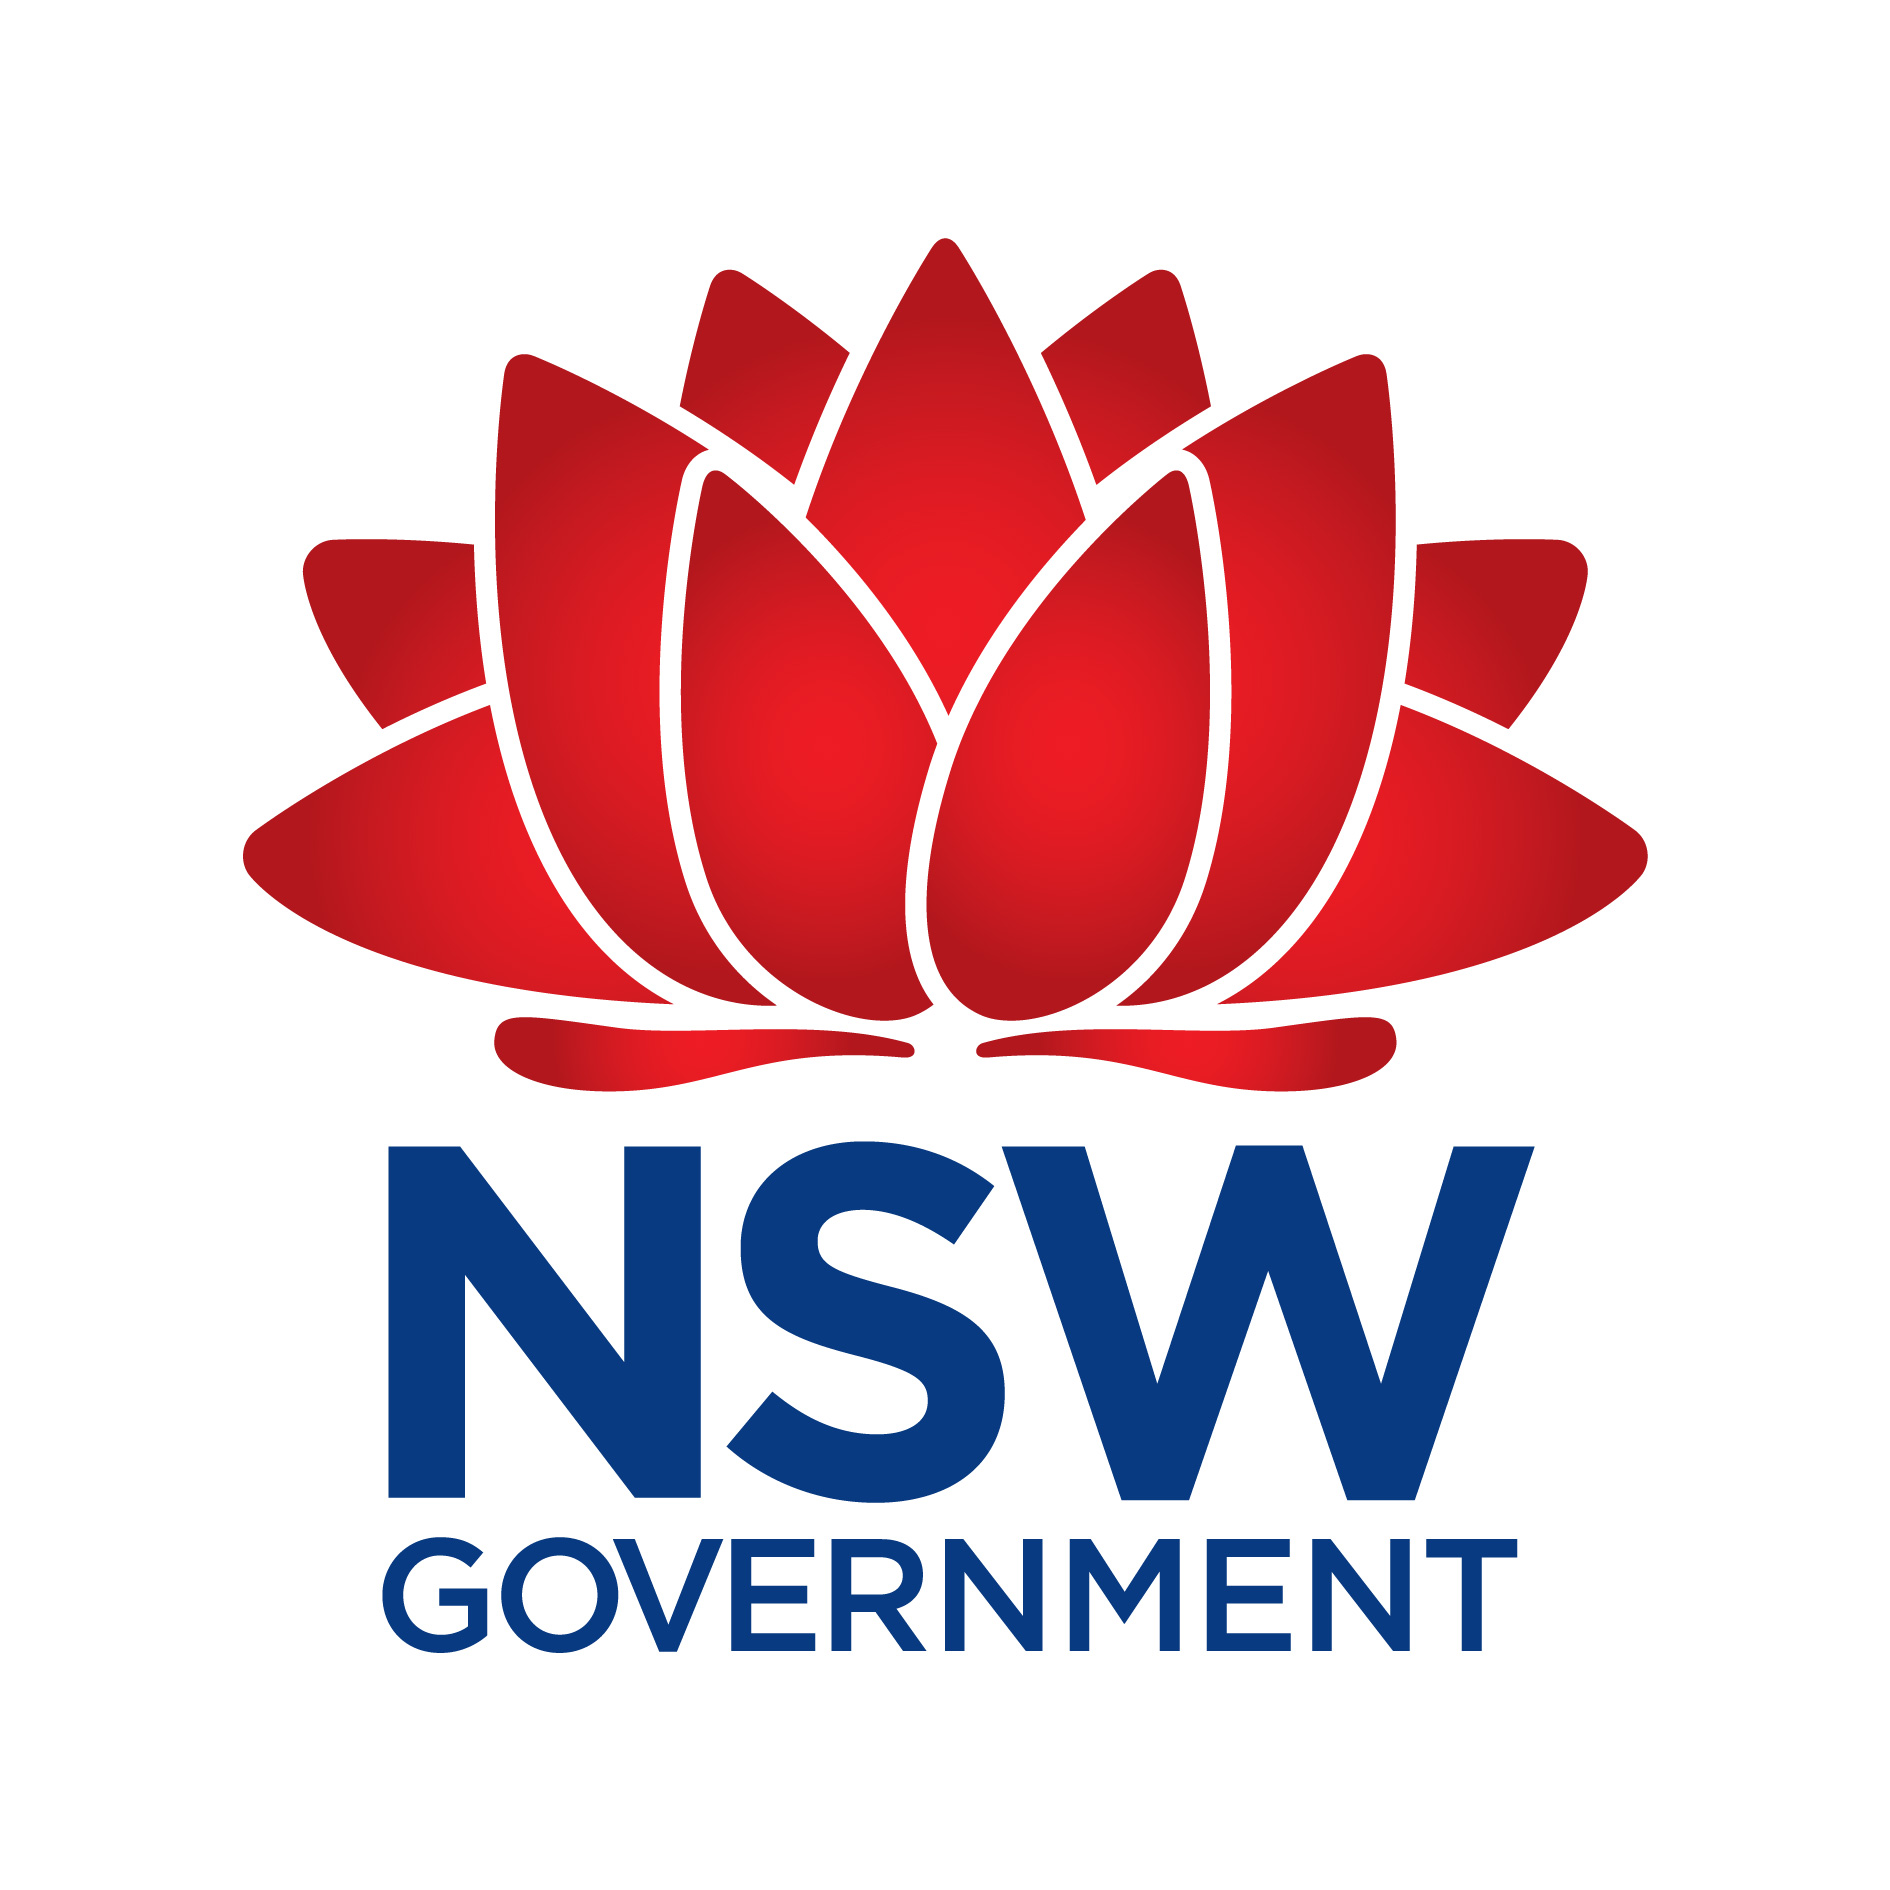 NSW Government.jpg